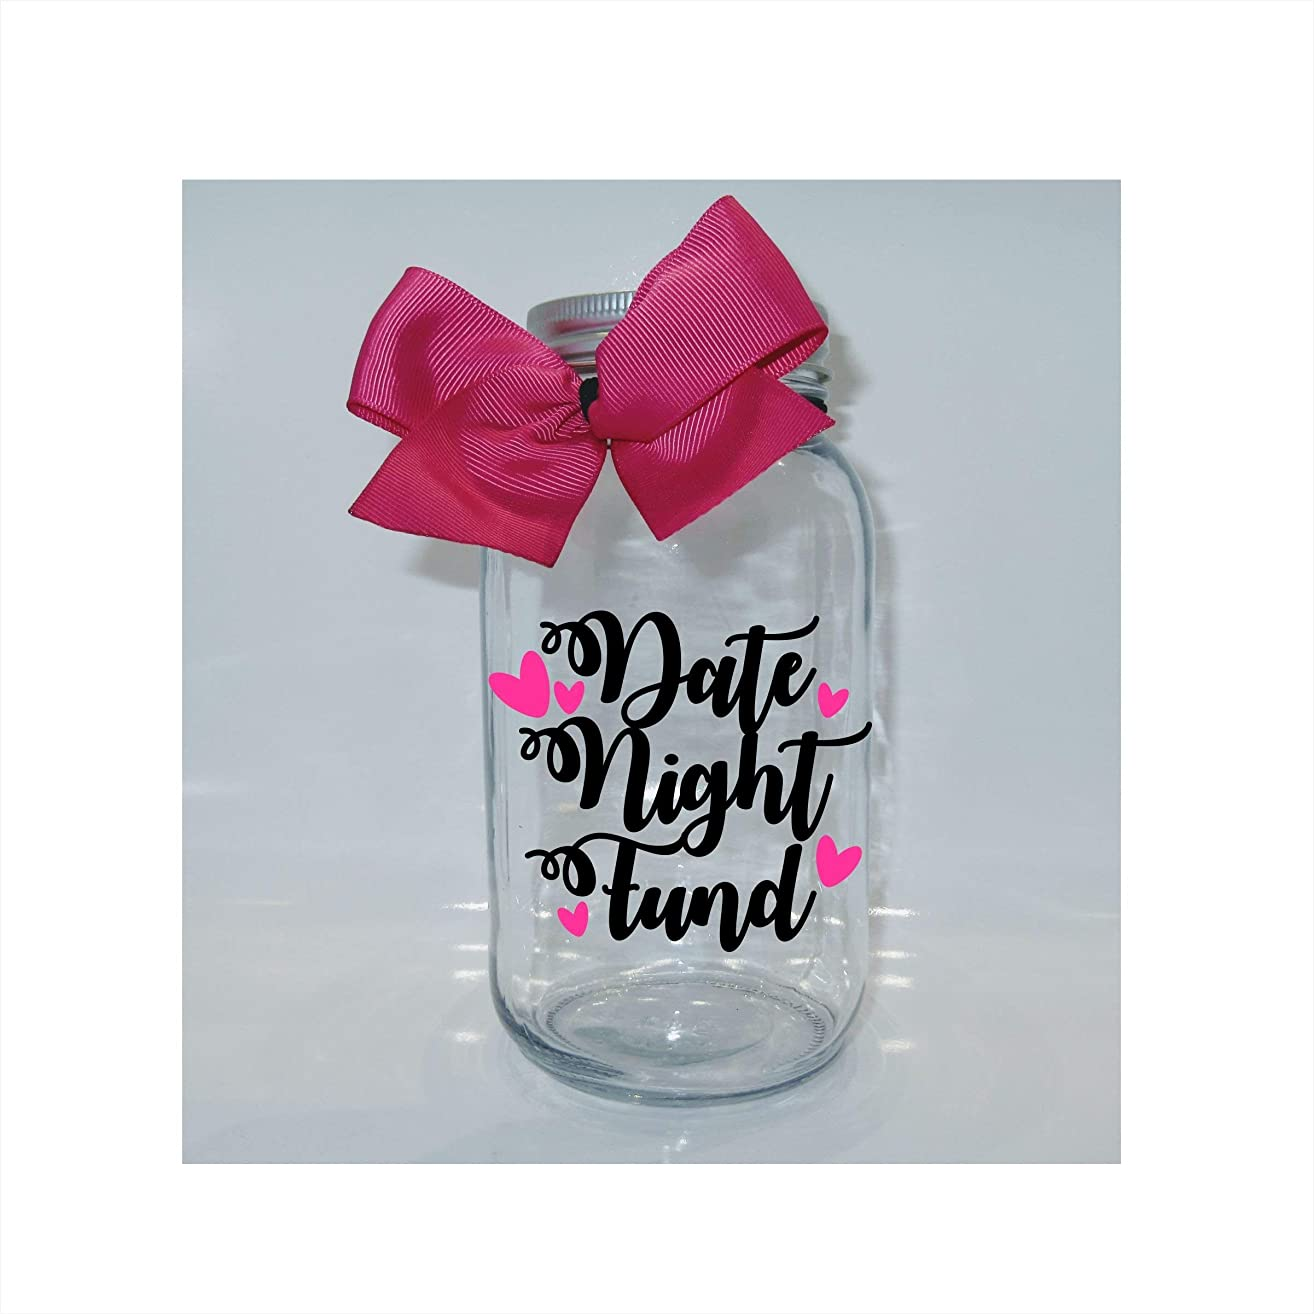 Date Night Fund Mason Jar Bank - Coin Slot Lid - Available in 3 Sizes